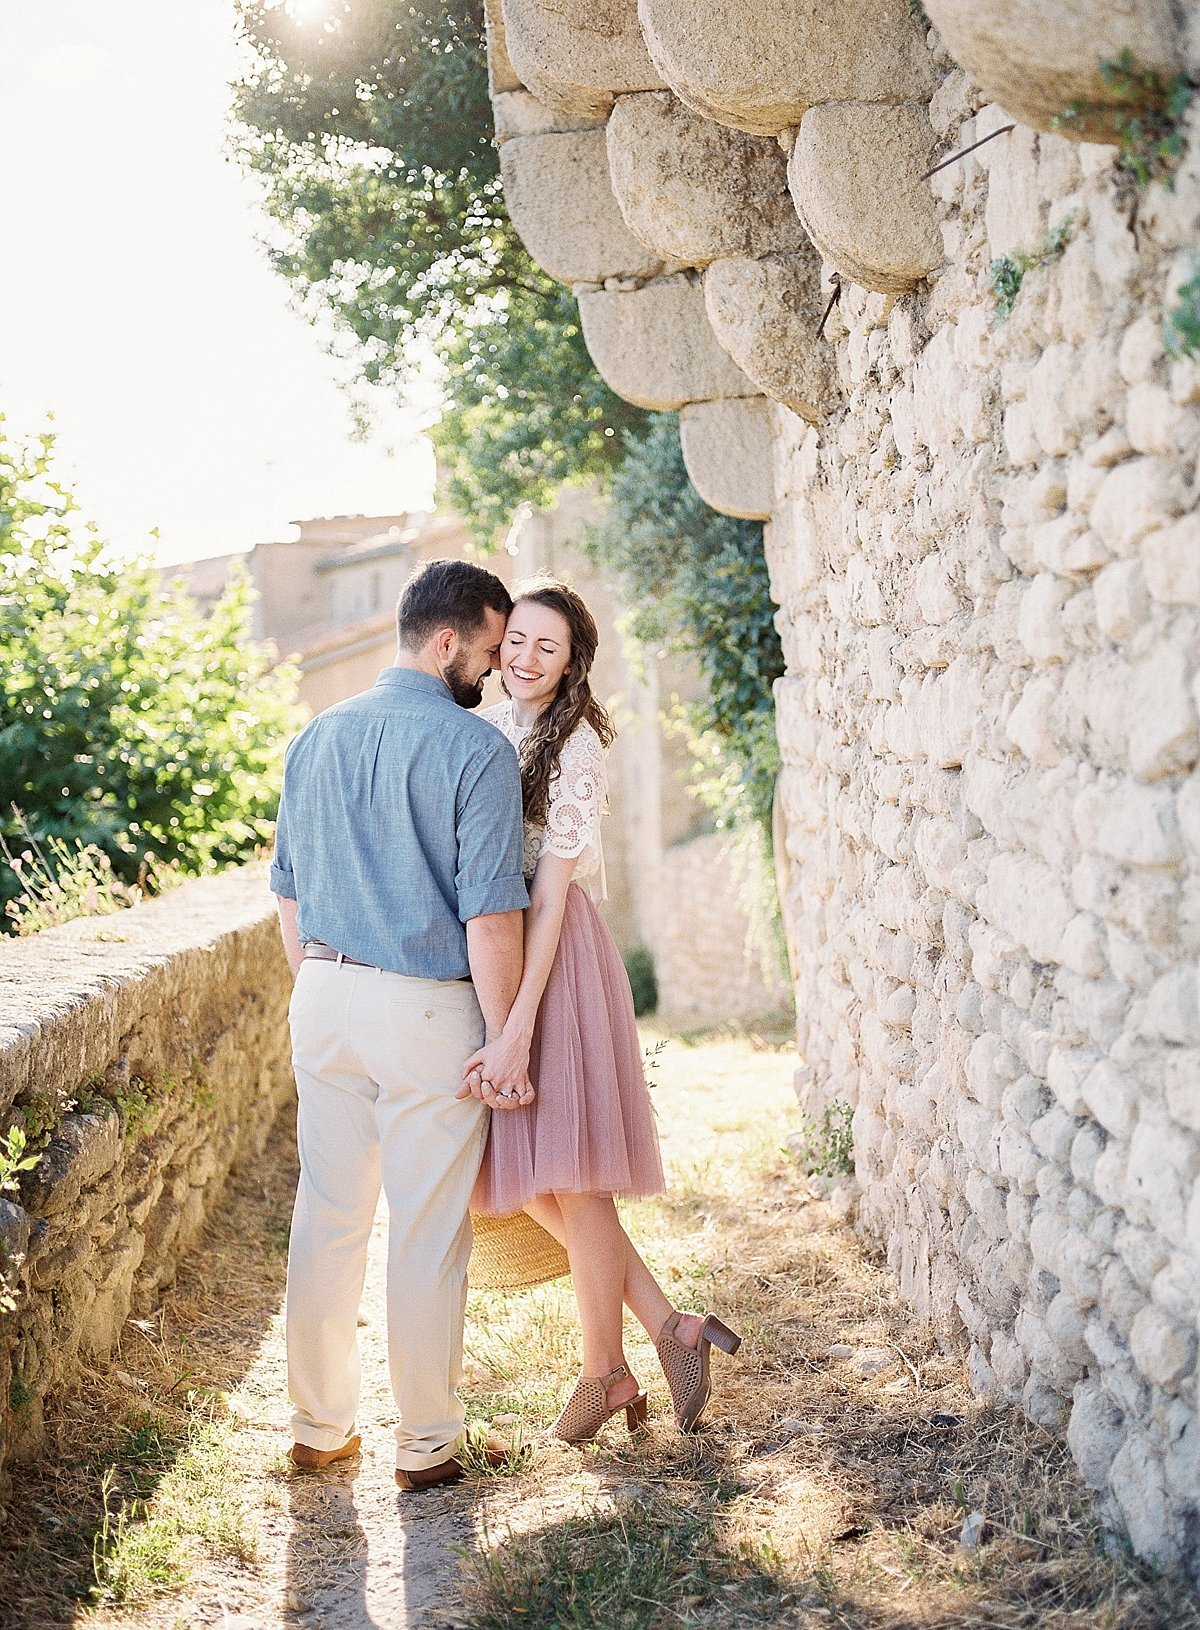 France-lavender-anniversary-session-alicia-yarrish-photography-23-2